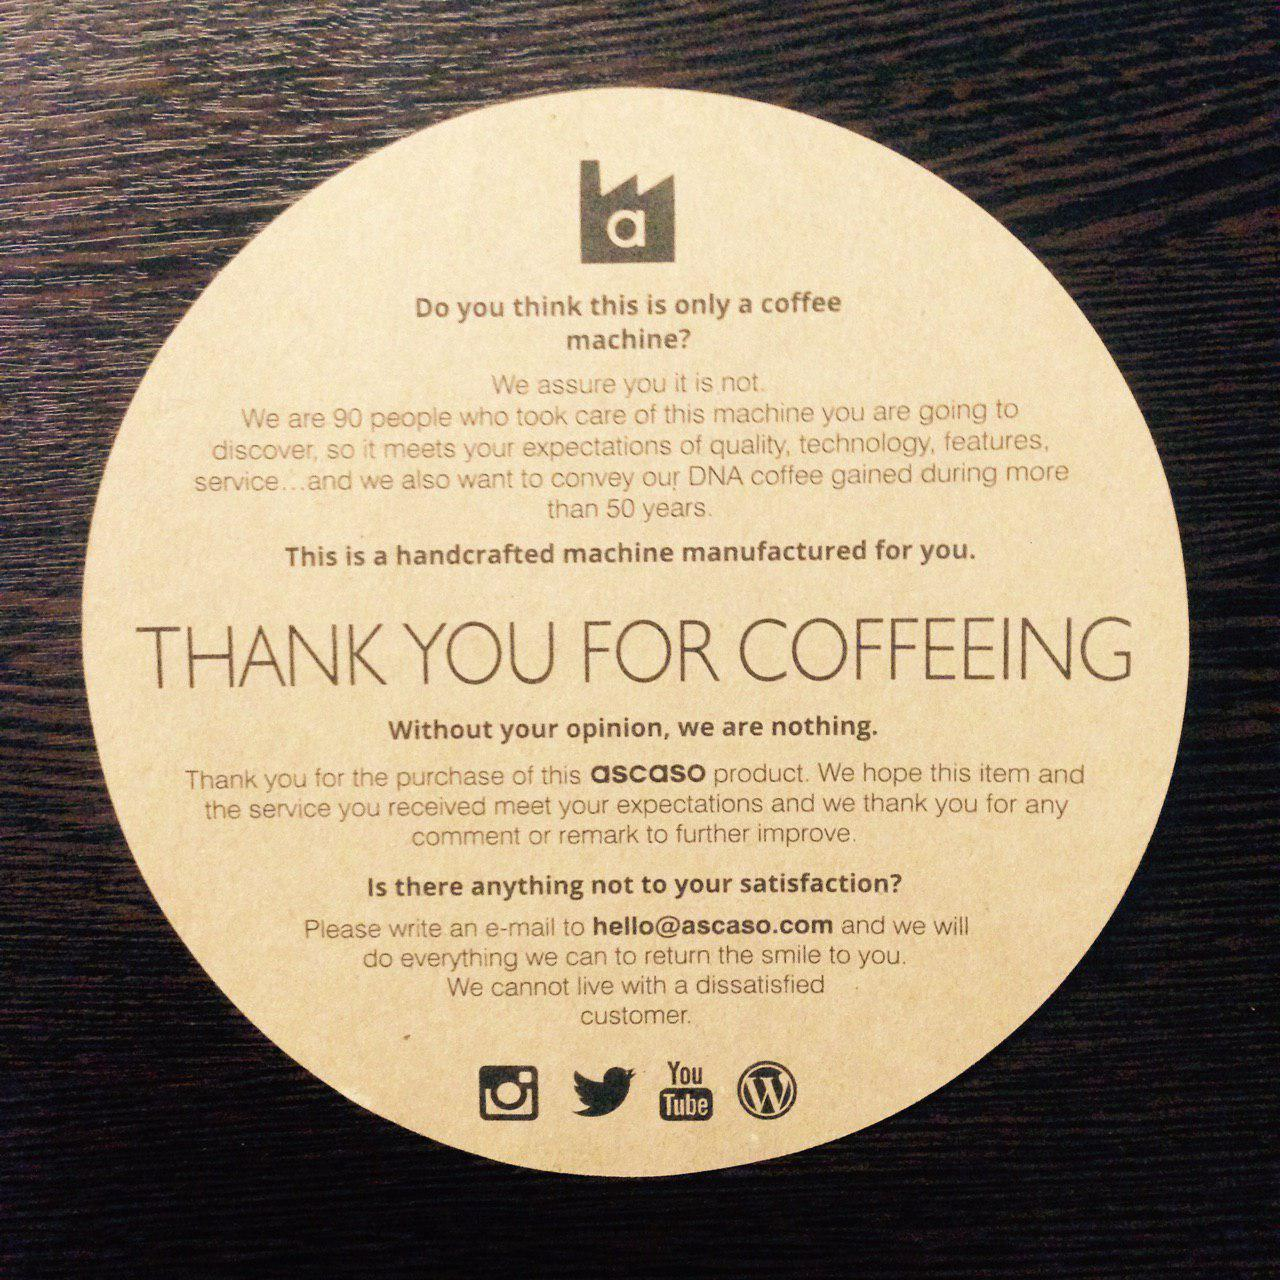 Thank you for coffeeing